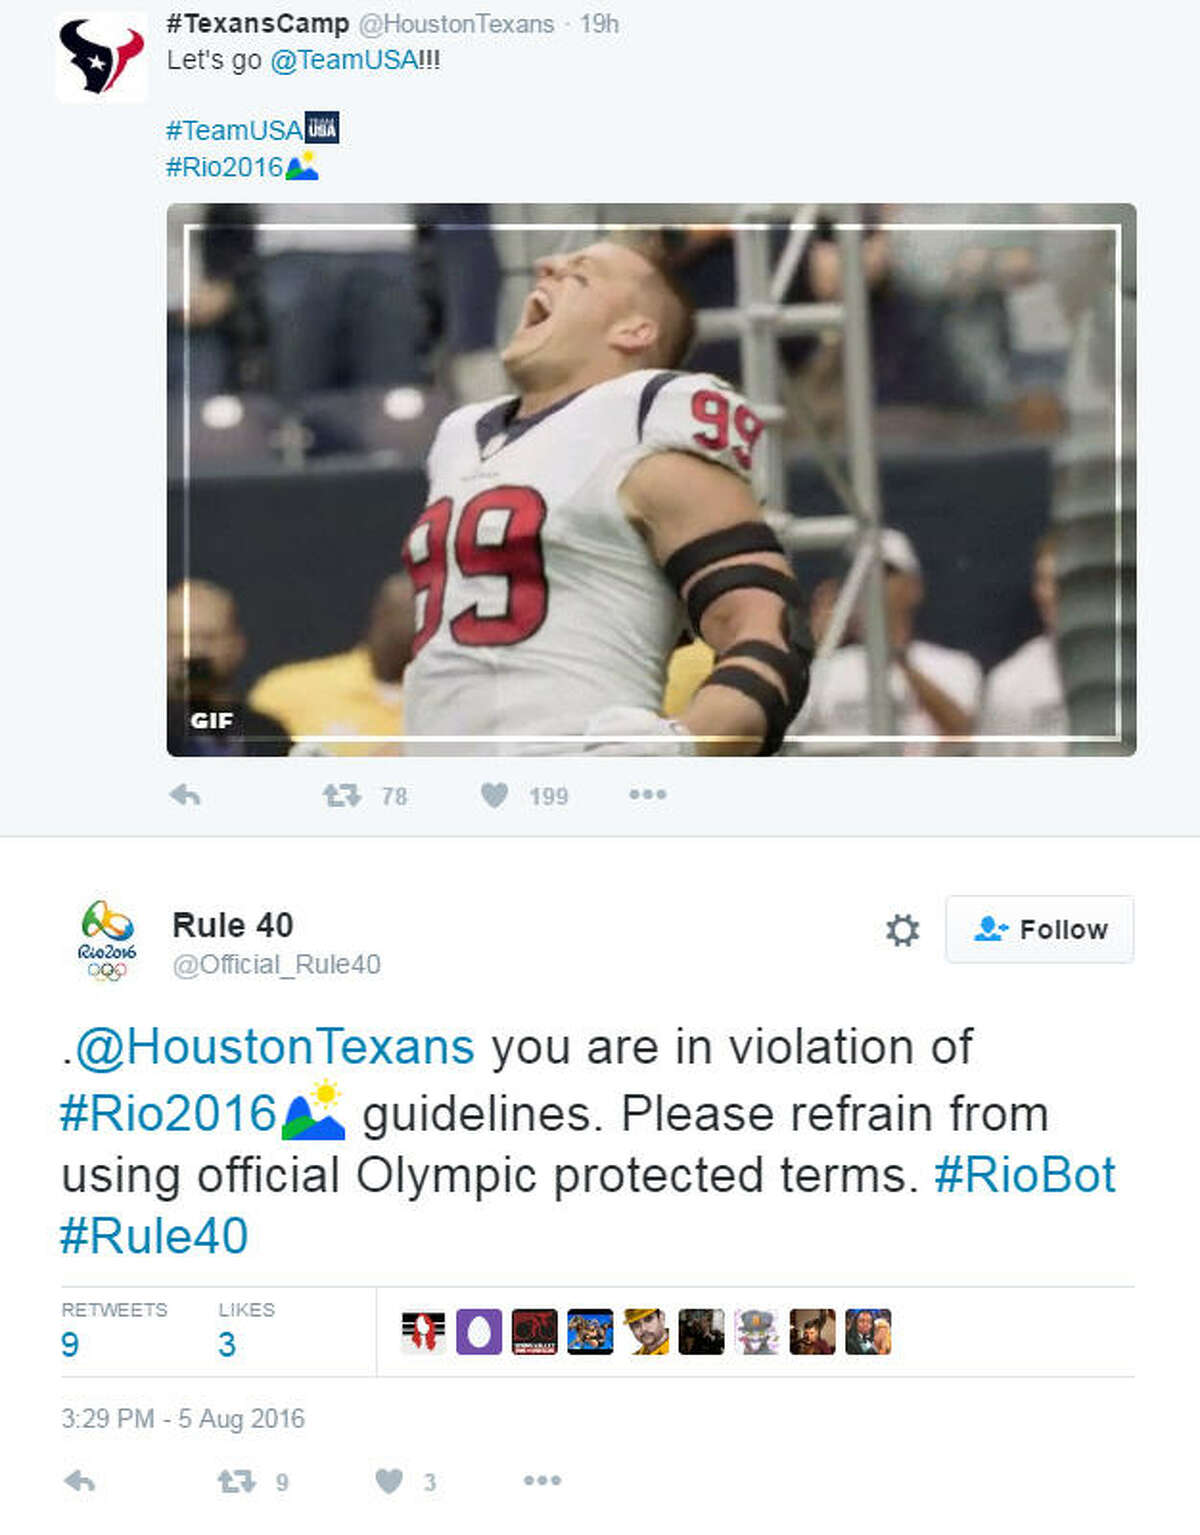 A bot Twitter account created to protest the IOC's Rule 40 targeted basically everyone tweeting about the Olympics, including big names like Donald Trump, the president, the pope and more.